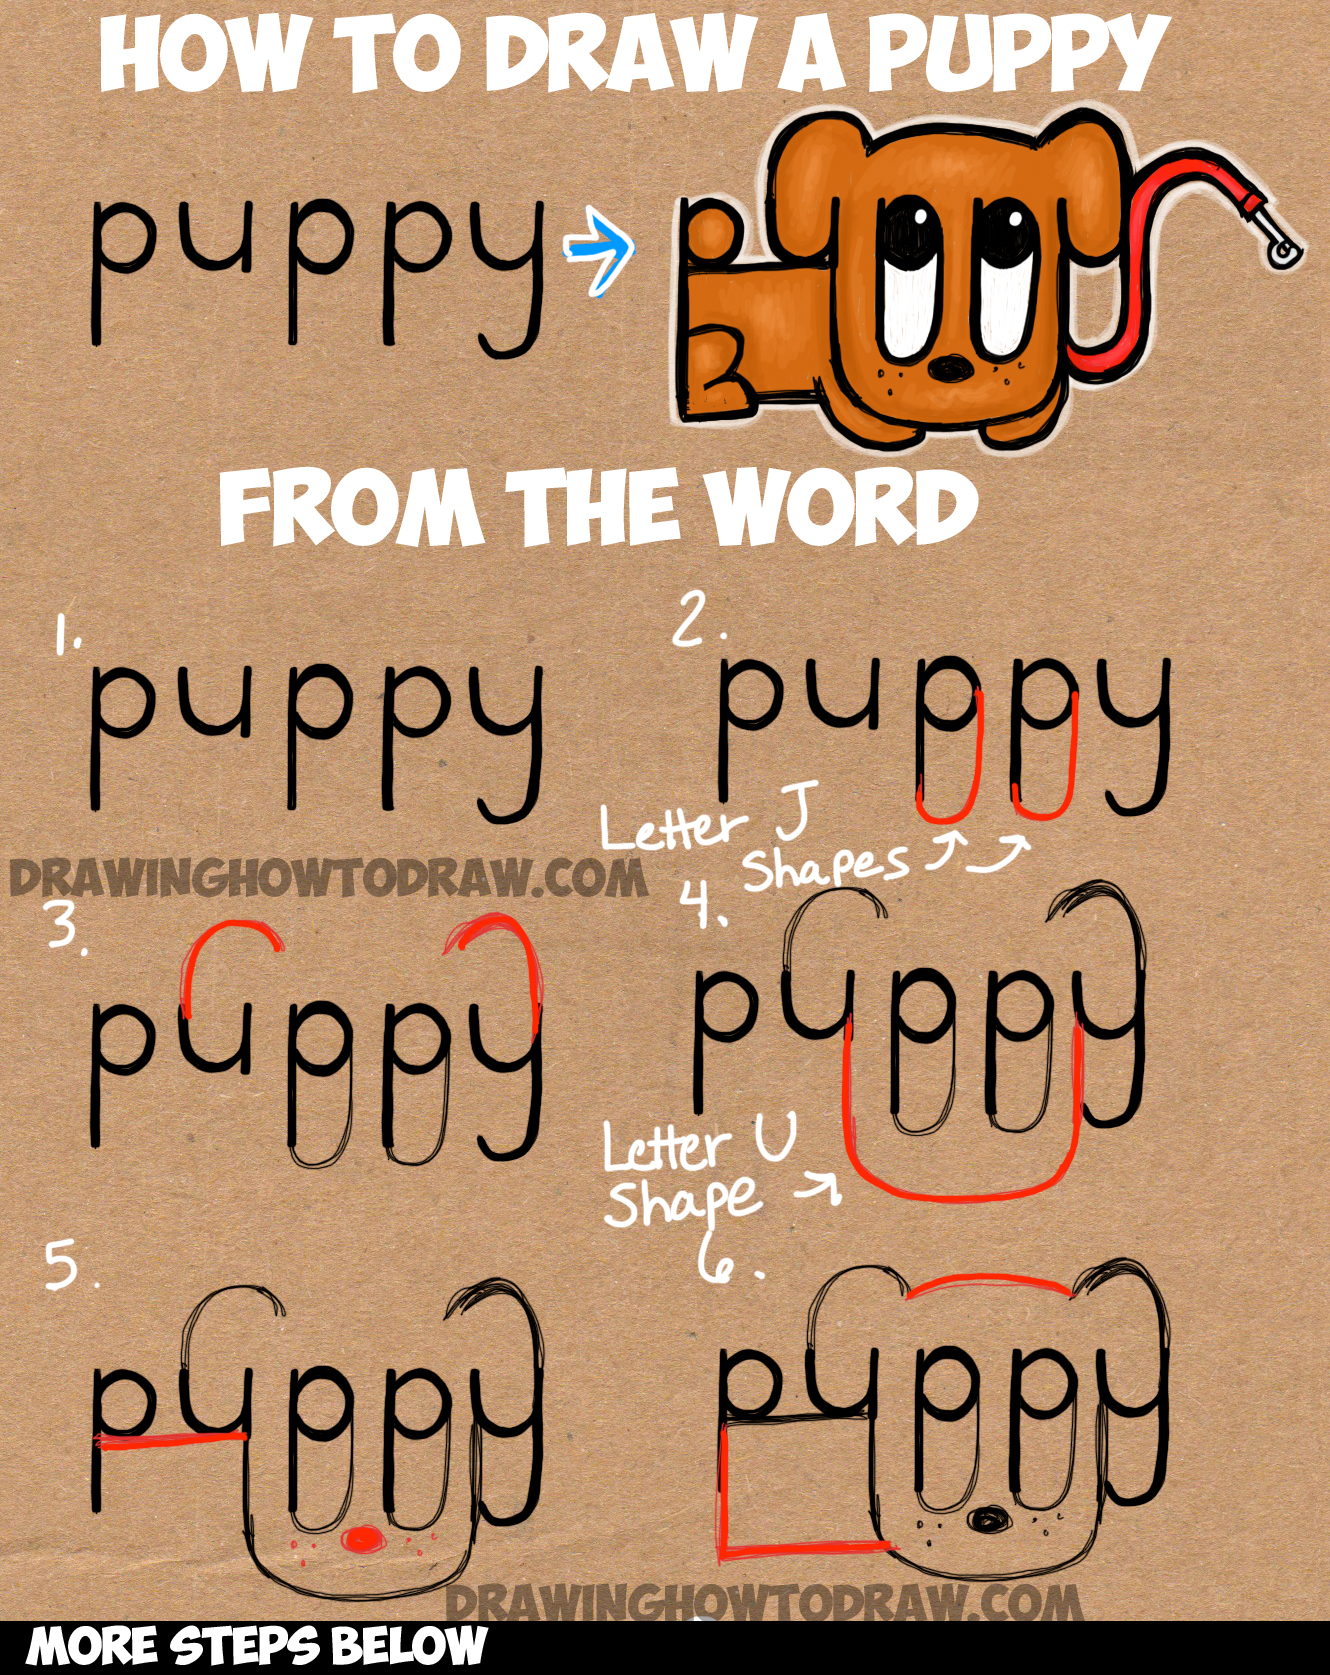 Learn How To Draw A Cartoon Puppy From The Word Puppy : Simple Step By  Step How To Draw A Dog Using Numbers!